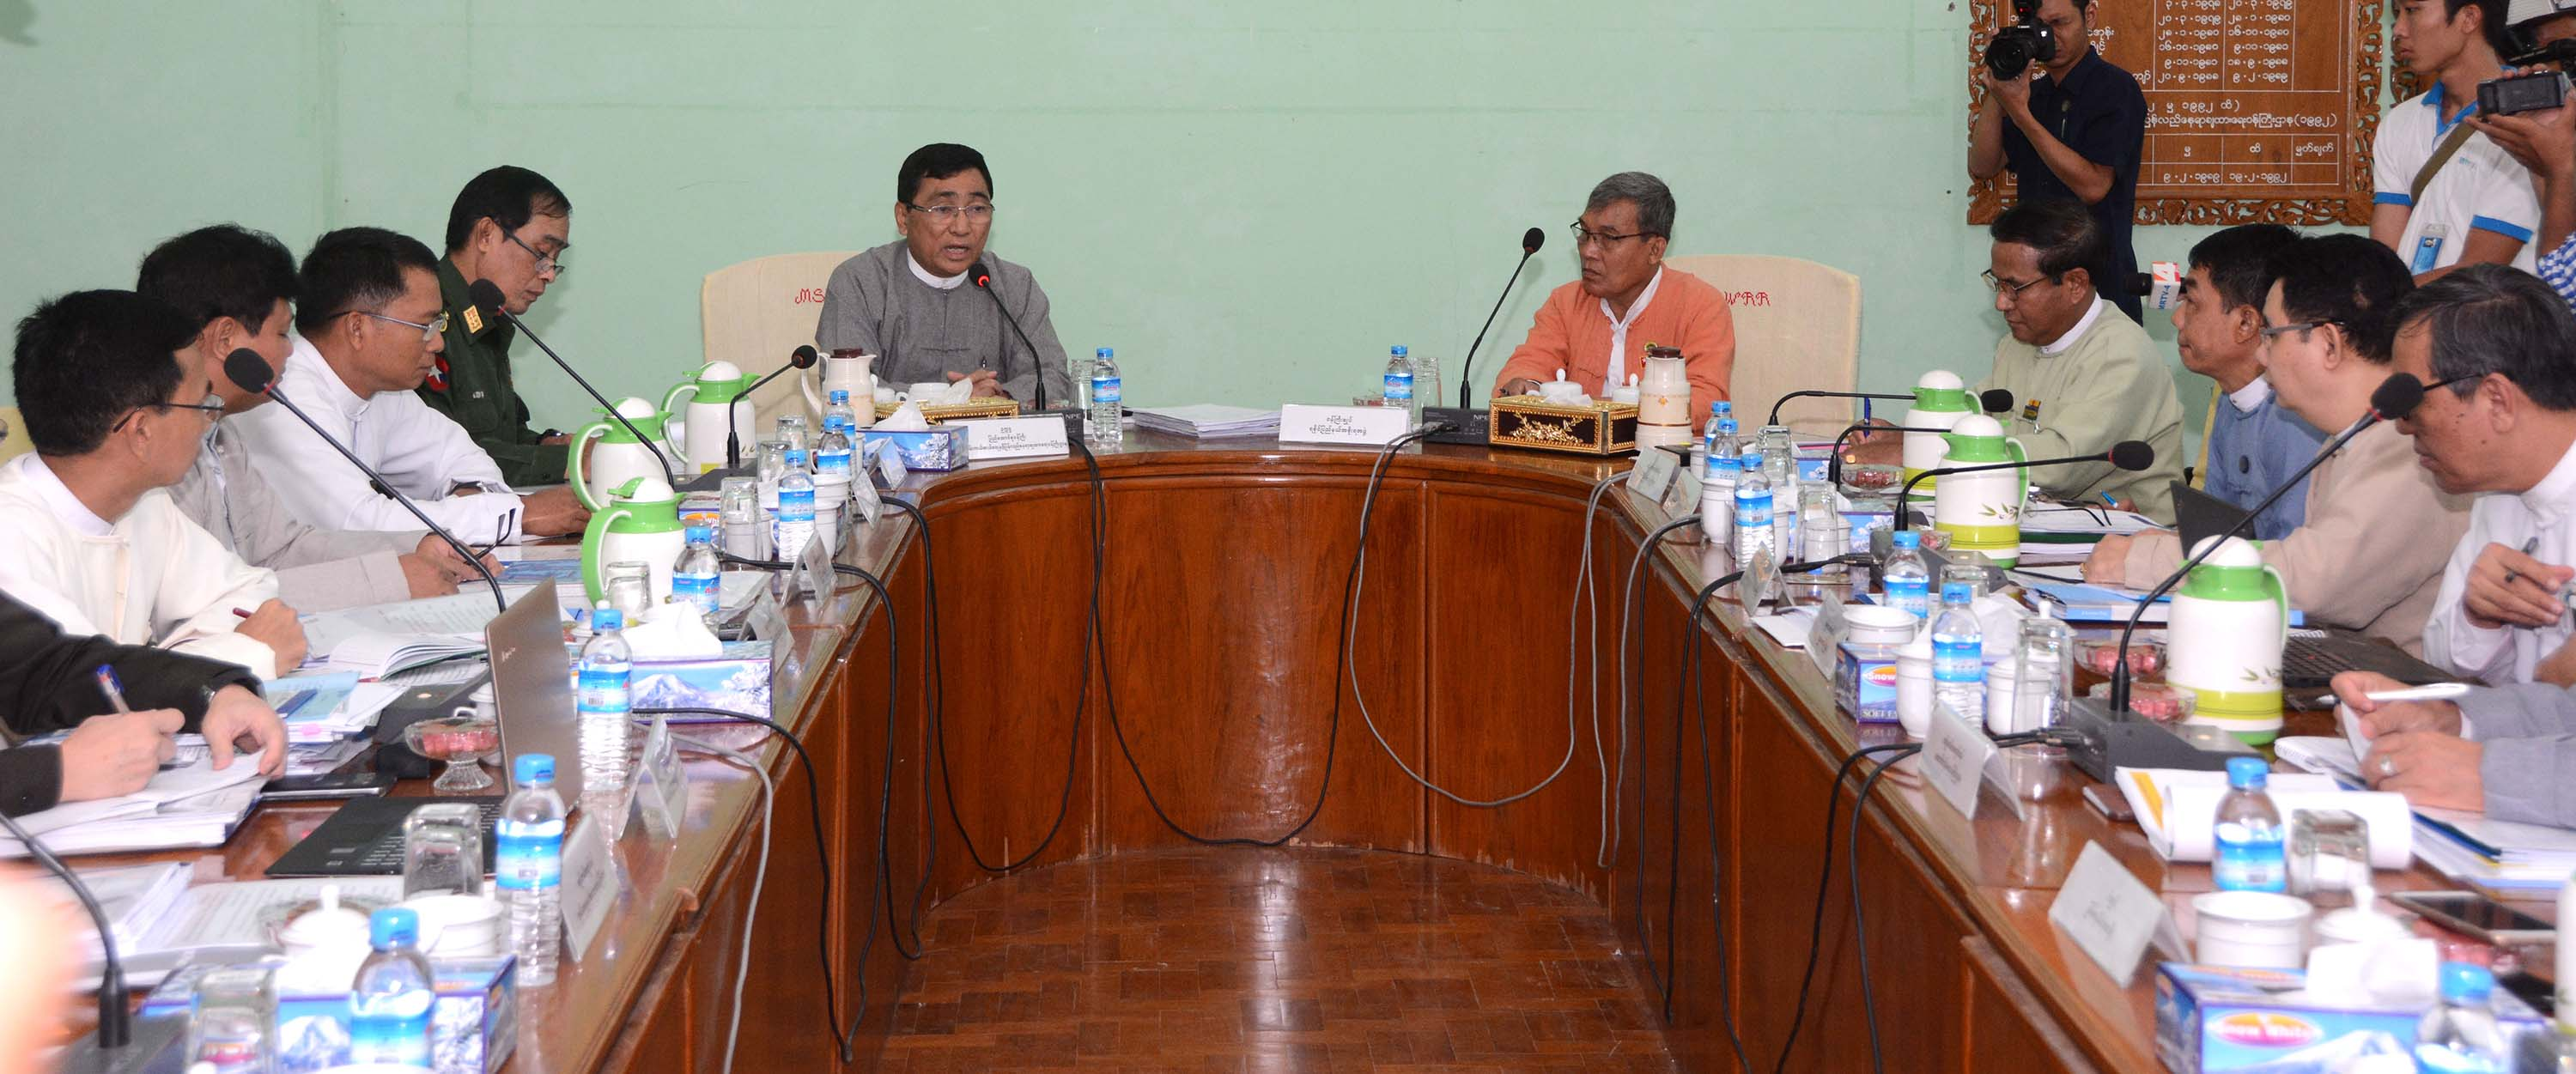 Dr. Win Myat Aye (Centre, Left) and Rakhine State Chief Minister U Nyi Pu (Centre, Right) discuss at meeting of the Implementation Committee on Recommendations on Rakhine.Photo: MNA